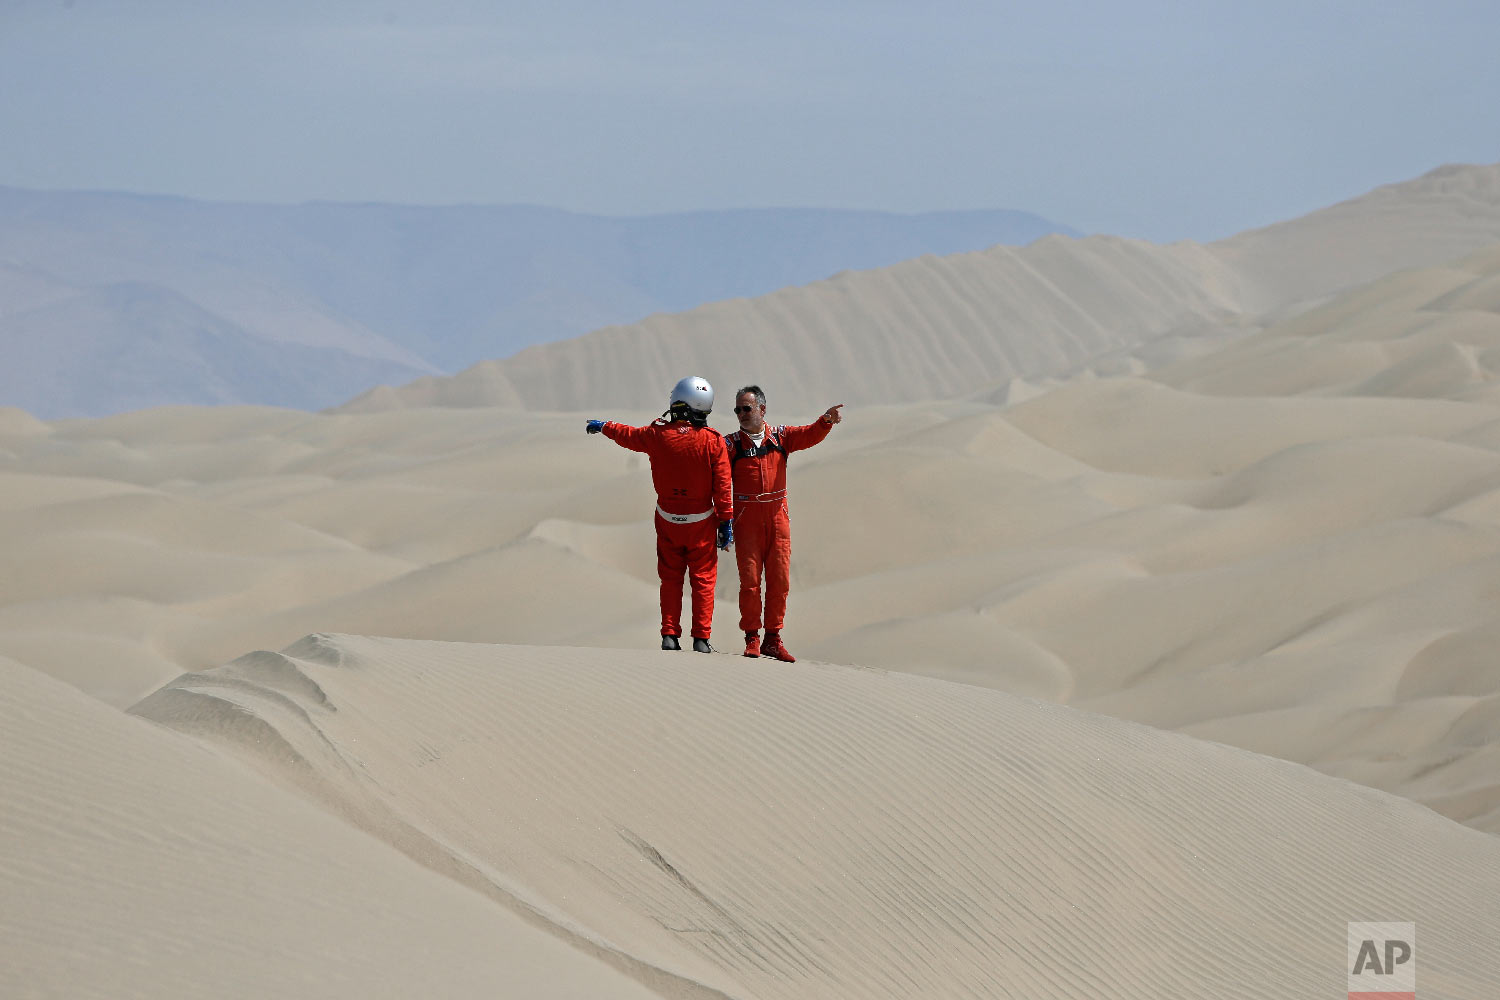 Philippe Raud, of France, right, and Miguel Angel Alvarez Pineda, of Peru, both drivers of Toyota cars, point in opposite directions as they try to determine their way across the dunes during stage 5 of the Dakar Rally between San Juan de Marcona and Arequipa, Peru, on Jan. 10, 2018. (AP Photo/Ricardo Mazalan)